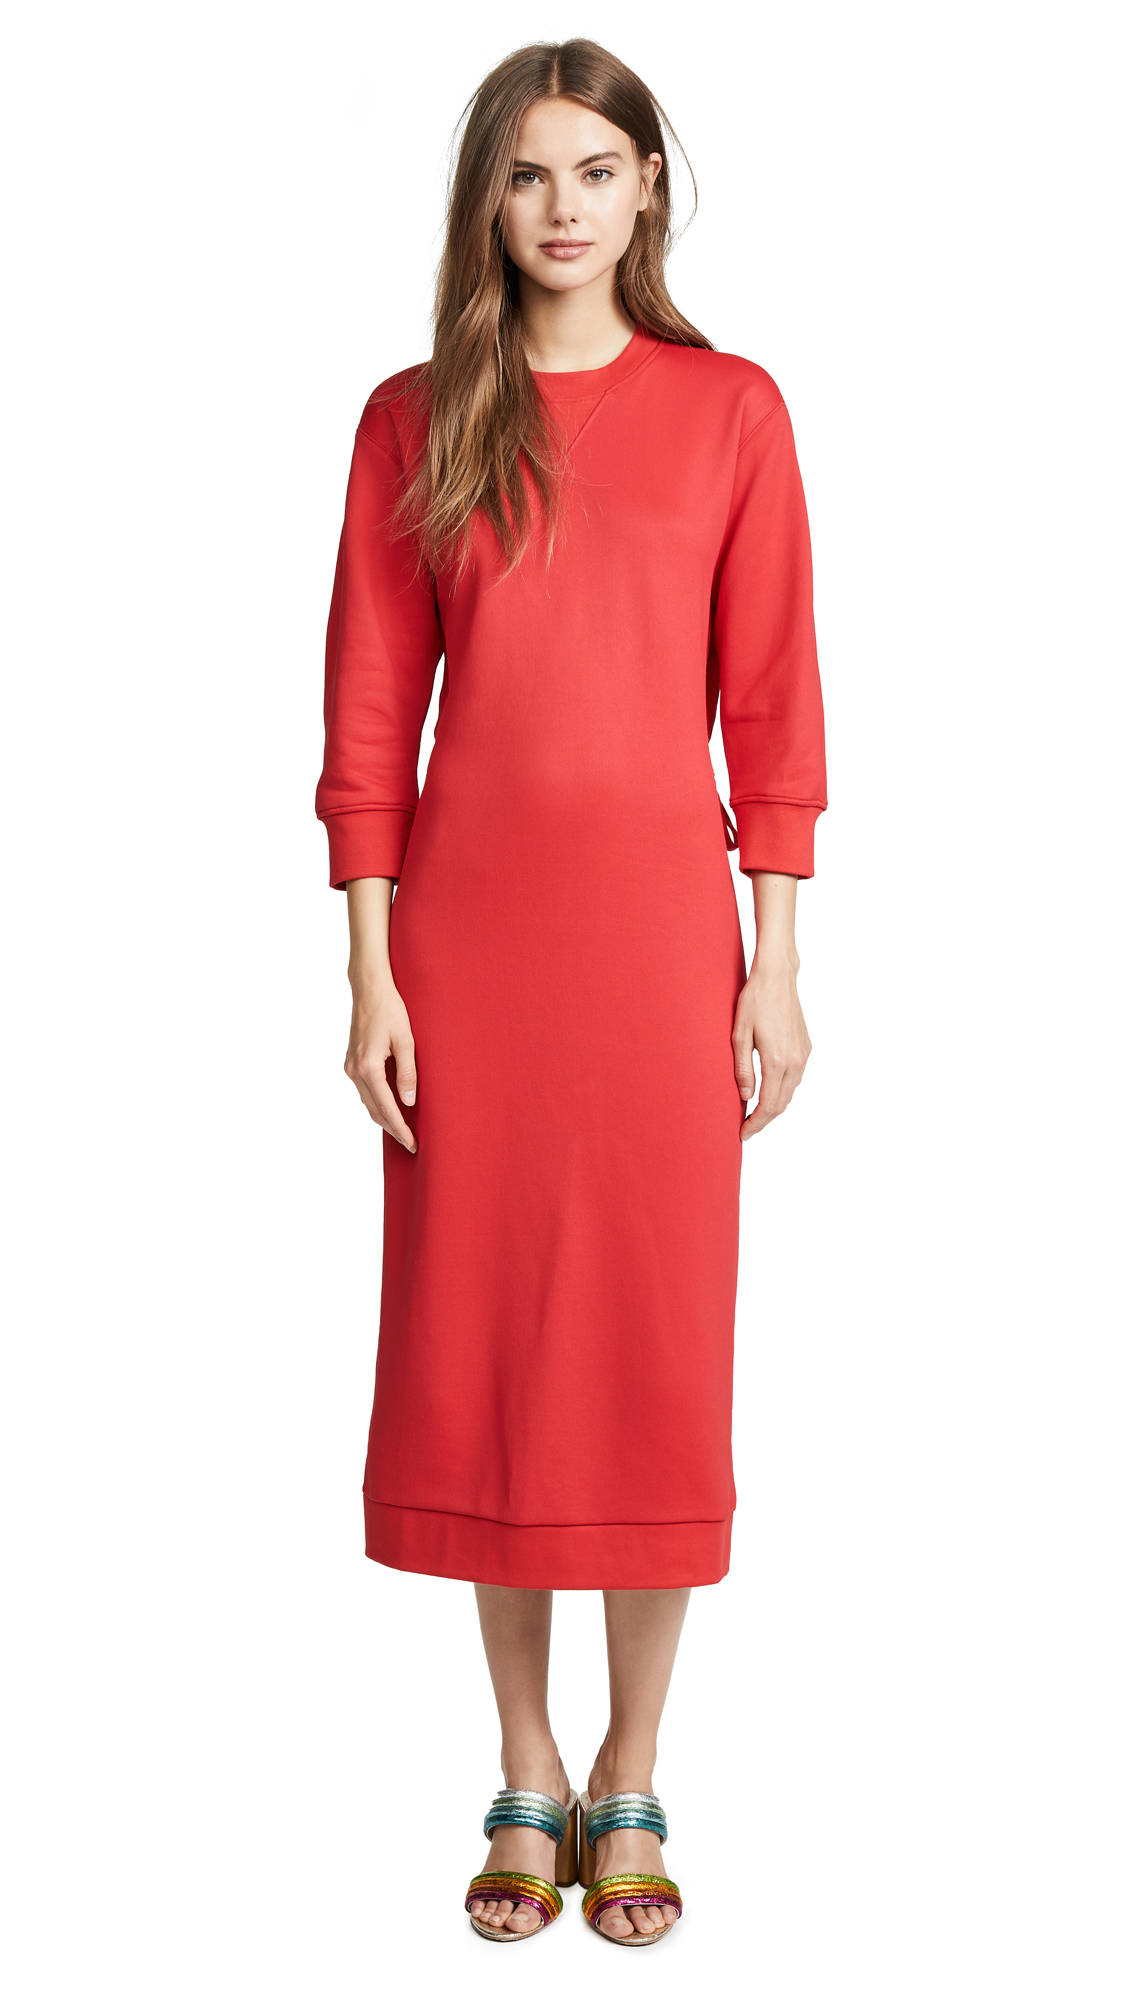 Tibi Open Back Sweatshirt Dress - Cherry